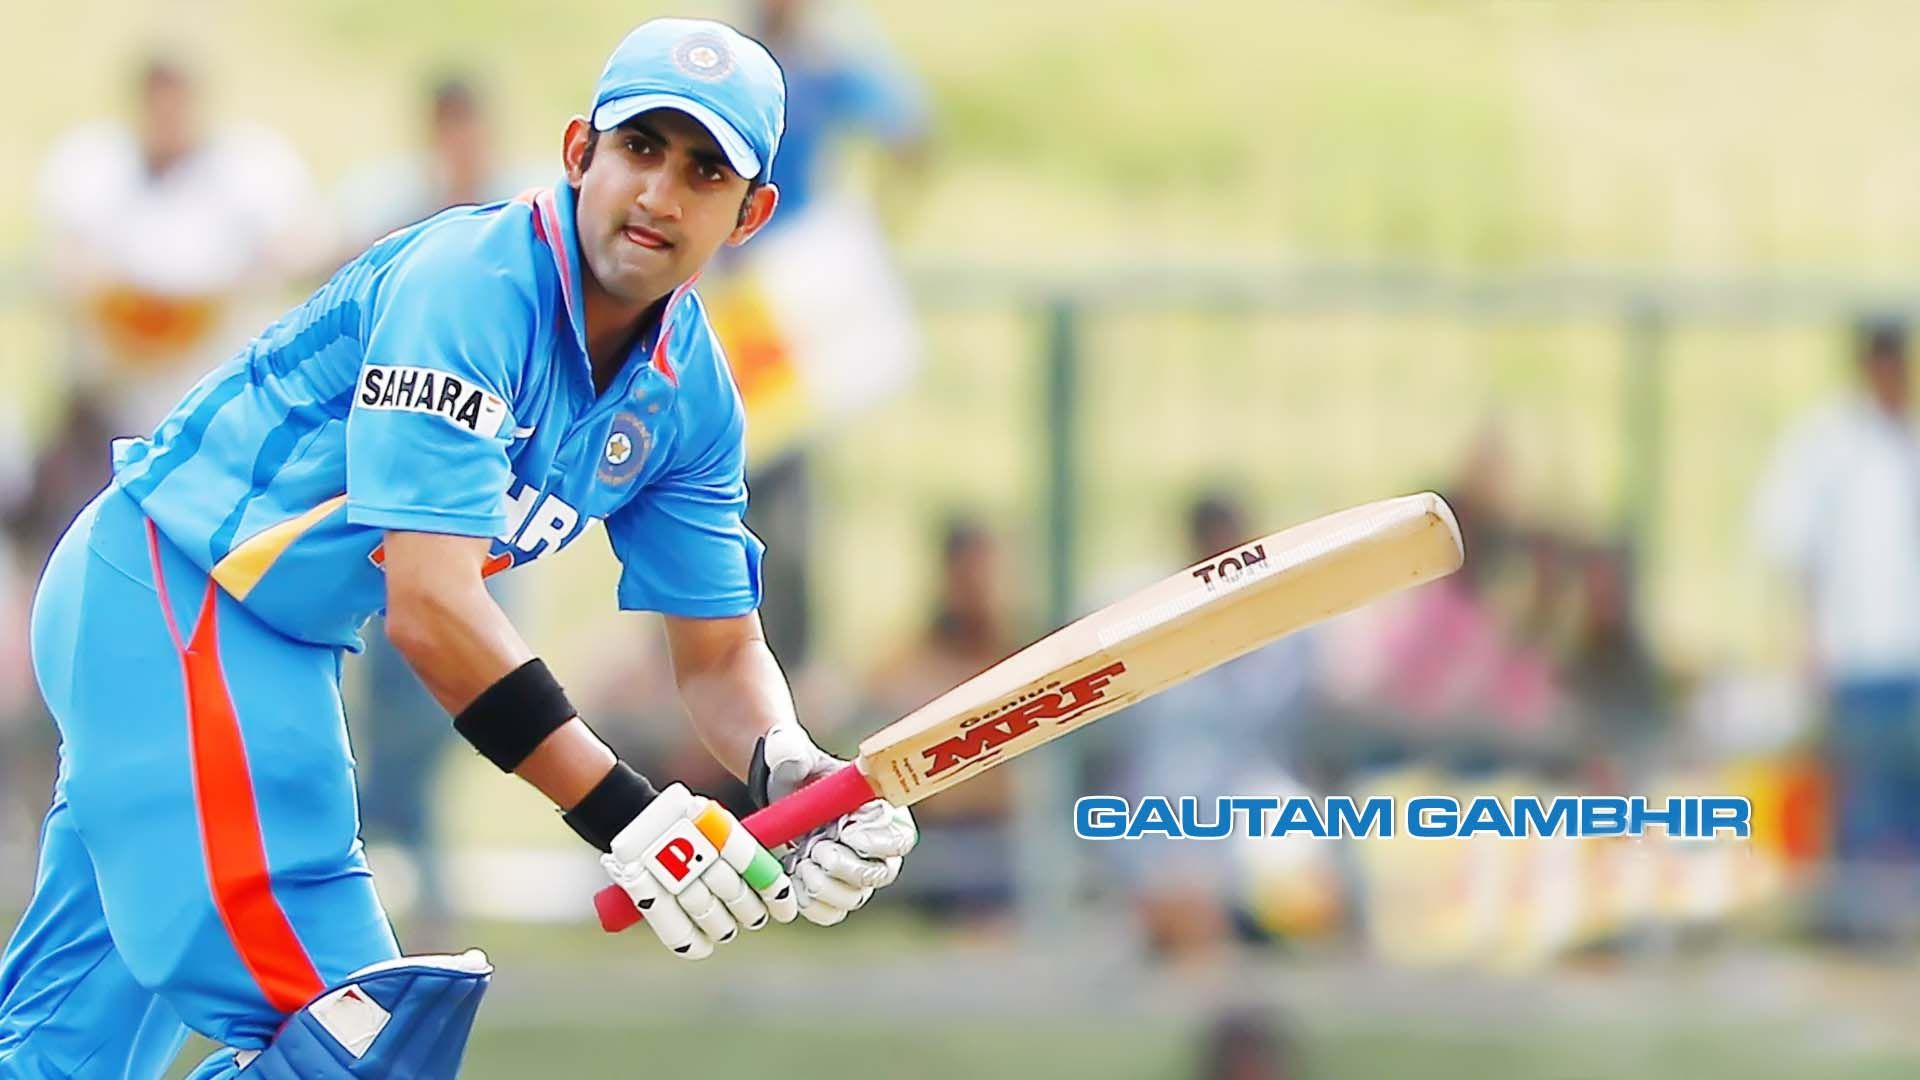 Wallpaper download cricket - Gautam Gambhir Indian Cricketer Wallpaper Indian Cricketer Wallpaper Cricket Bat Ball